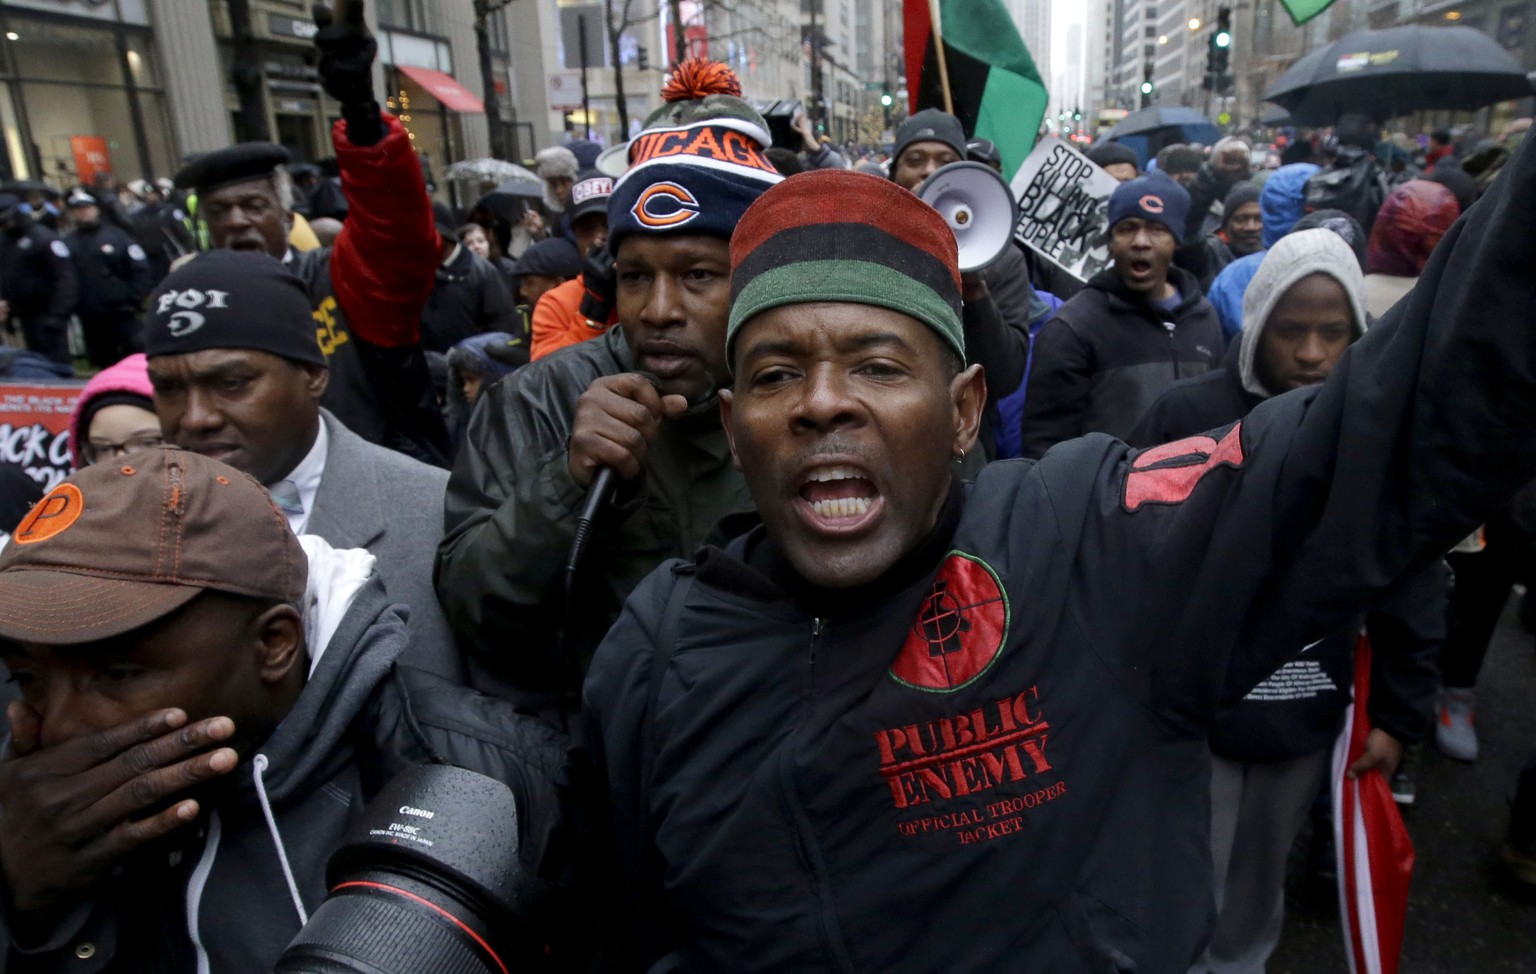 Protesters make their way up North Michigan Avenue on Friday, Nov. 27, 2015, in Chicago. Community activists and labor leaders hold a demonstration billed as a